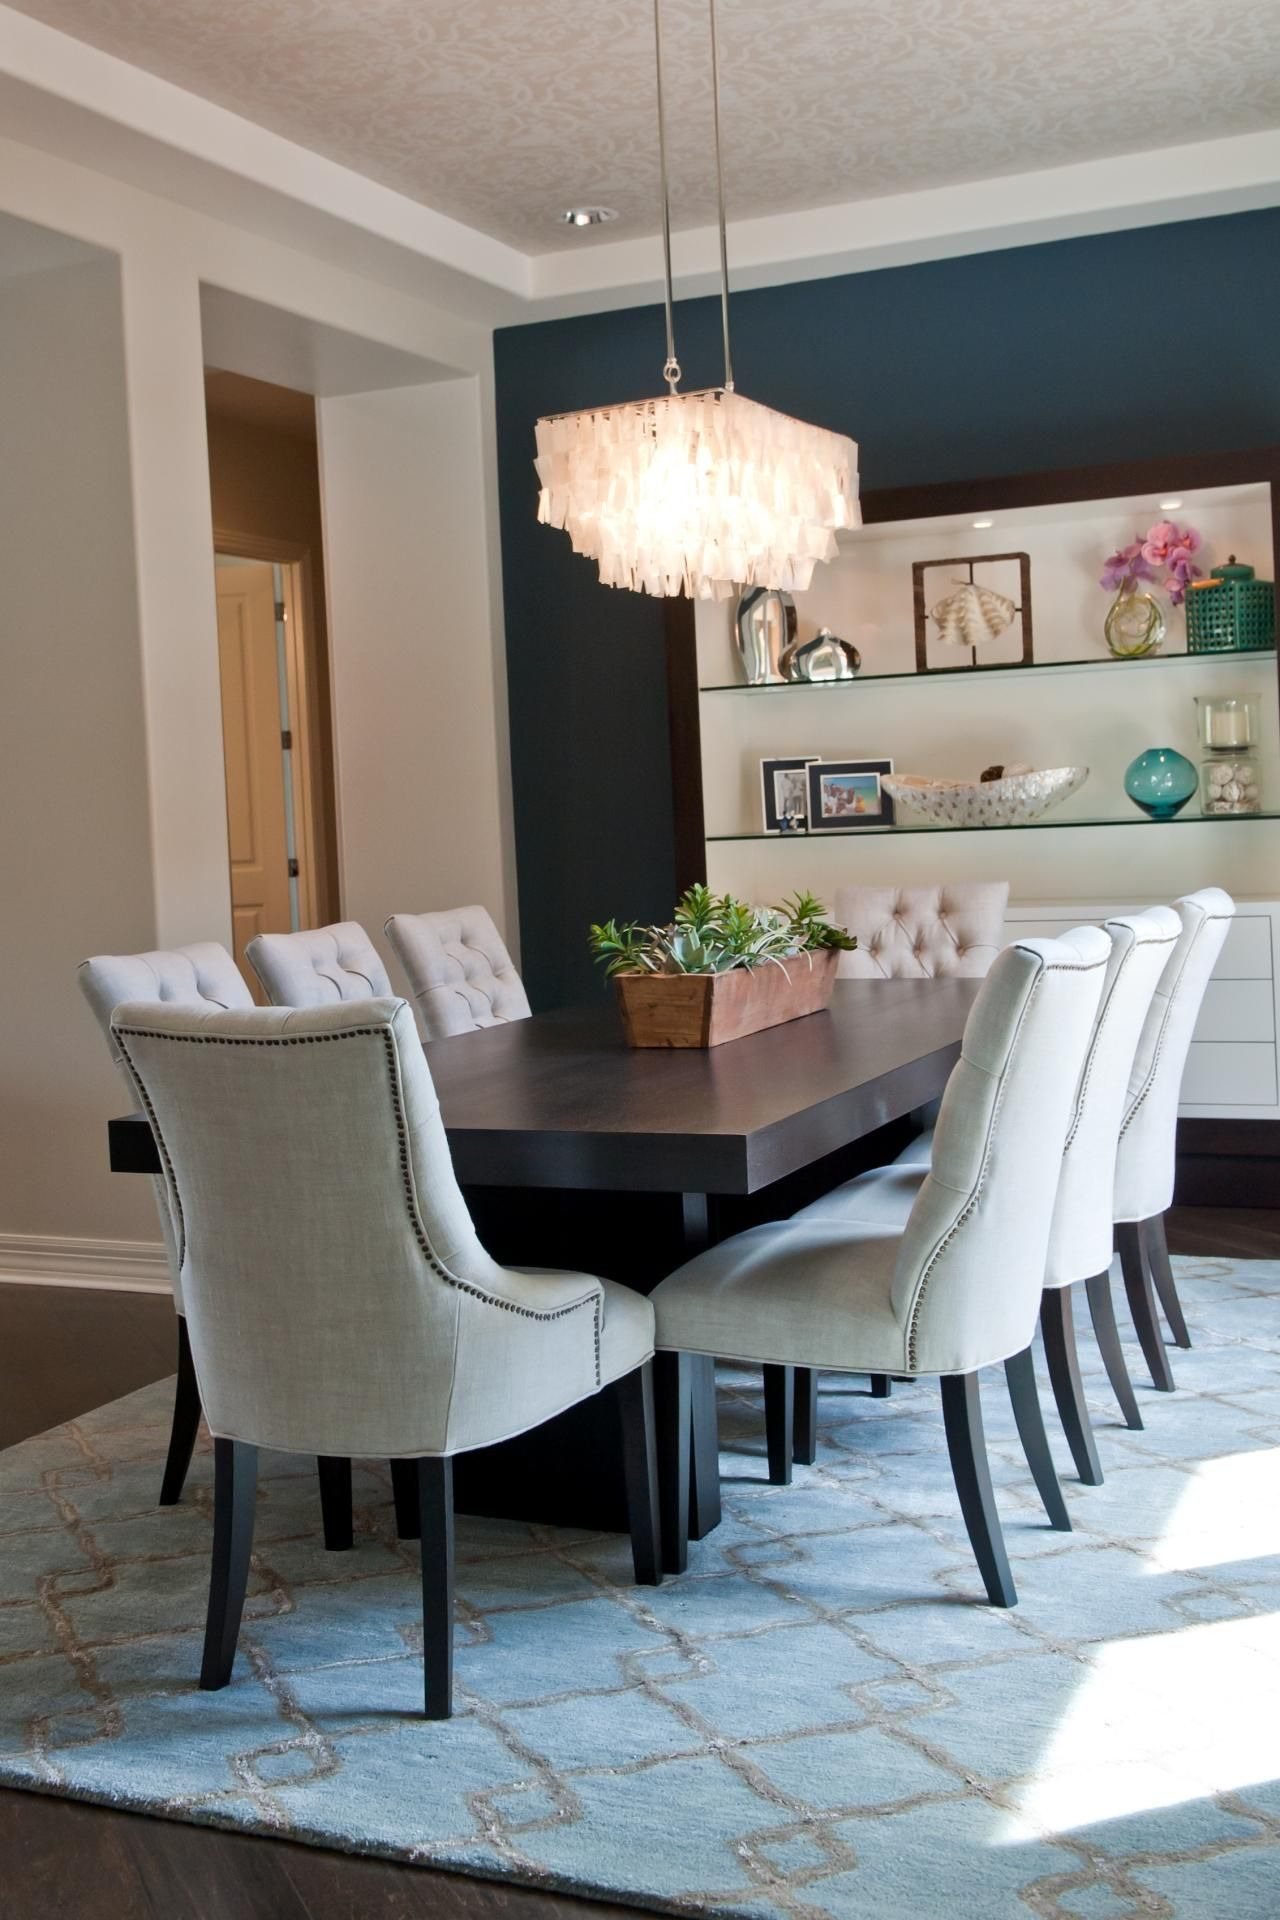 Eight Off White Tufted Chairs Surround A Dark Wood Table In This Chic Transitional D Dining Room Table Centerpieces Transitional Dining Room Dining Room Design